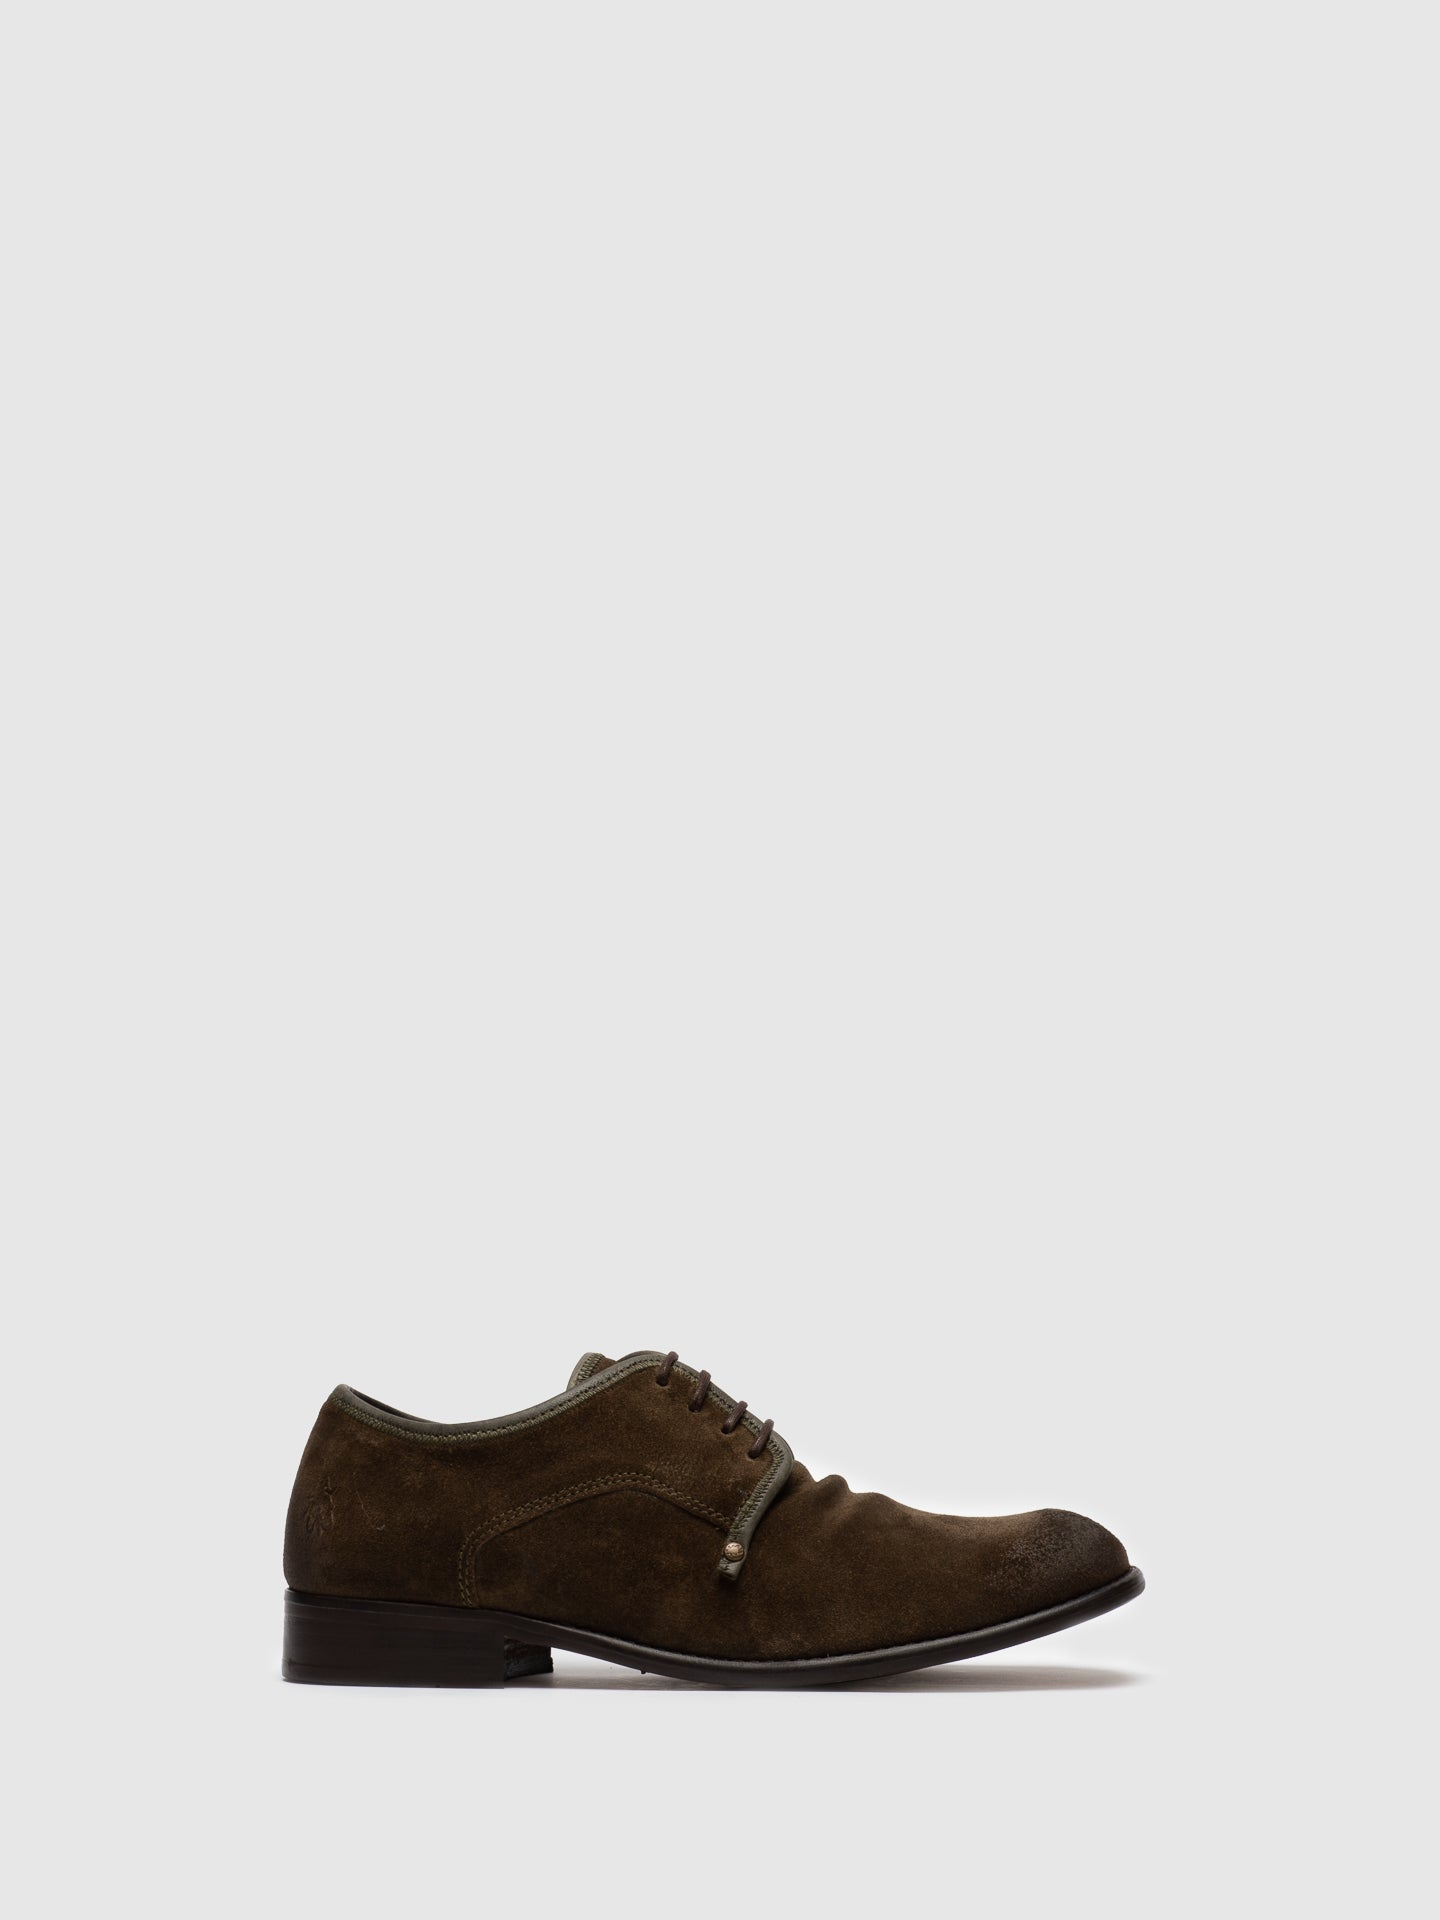 Fly London Olive Lace-up Shoes